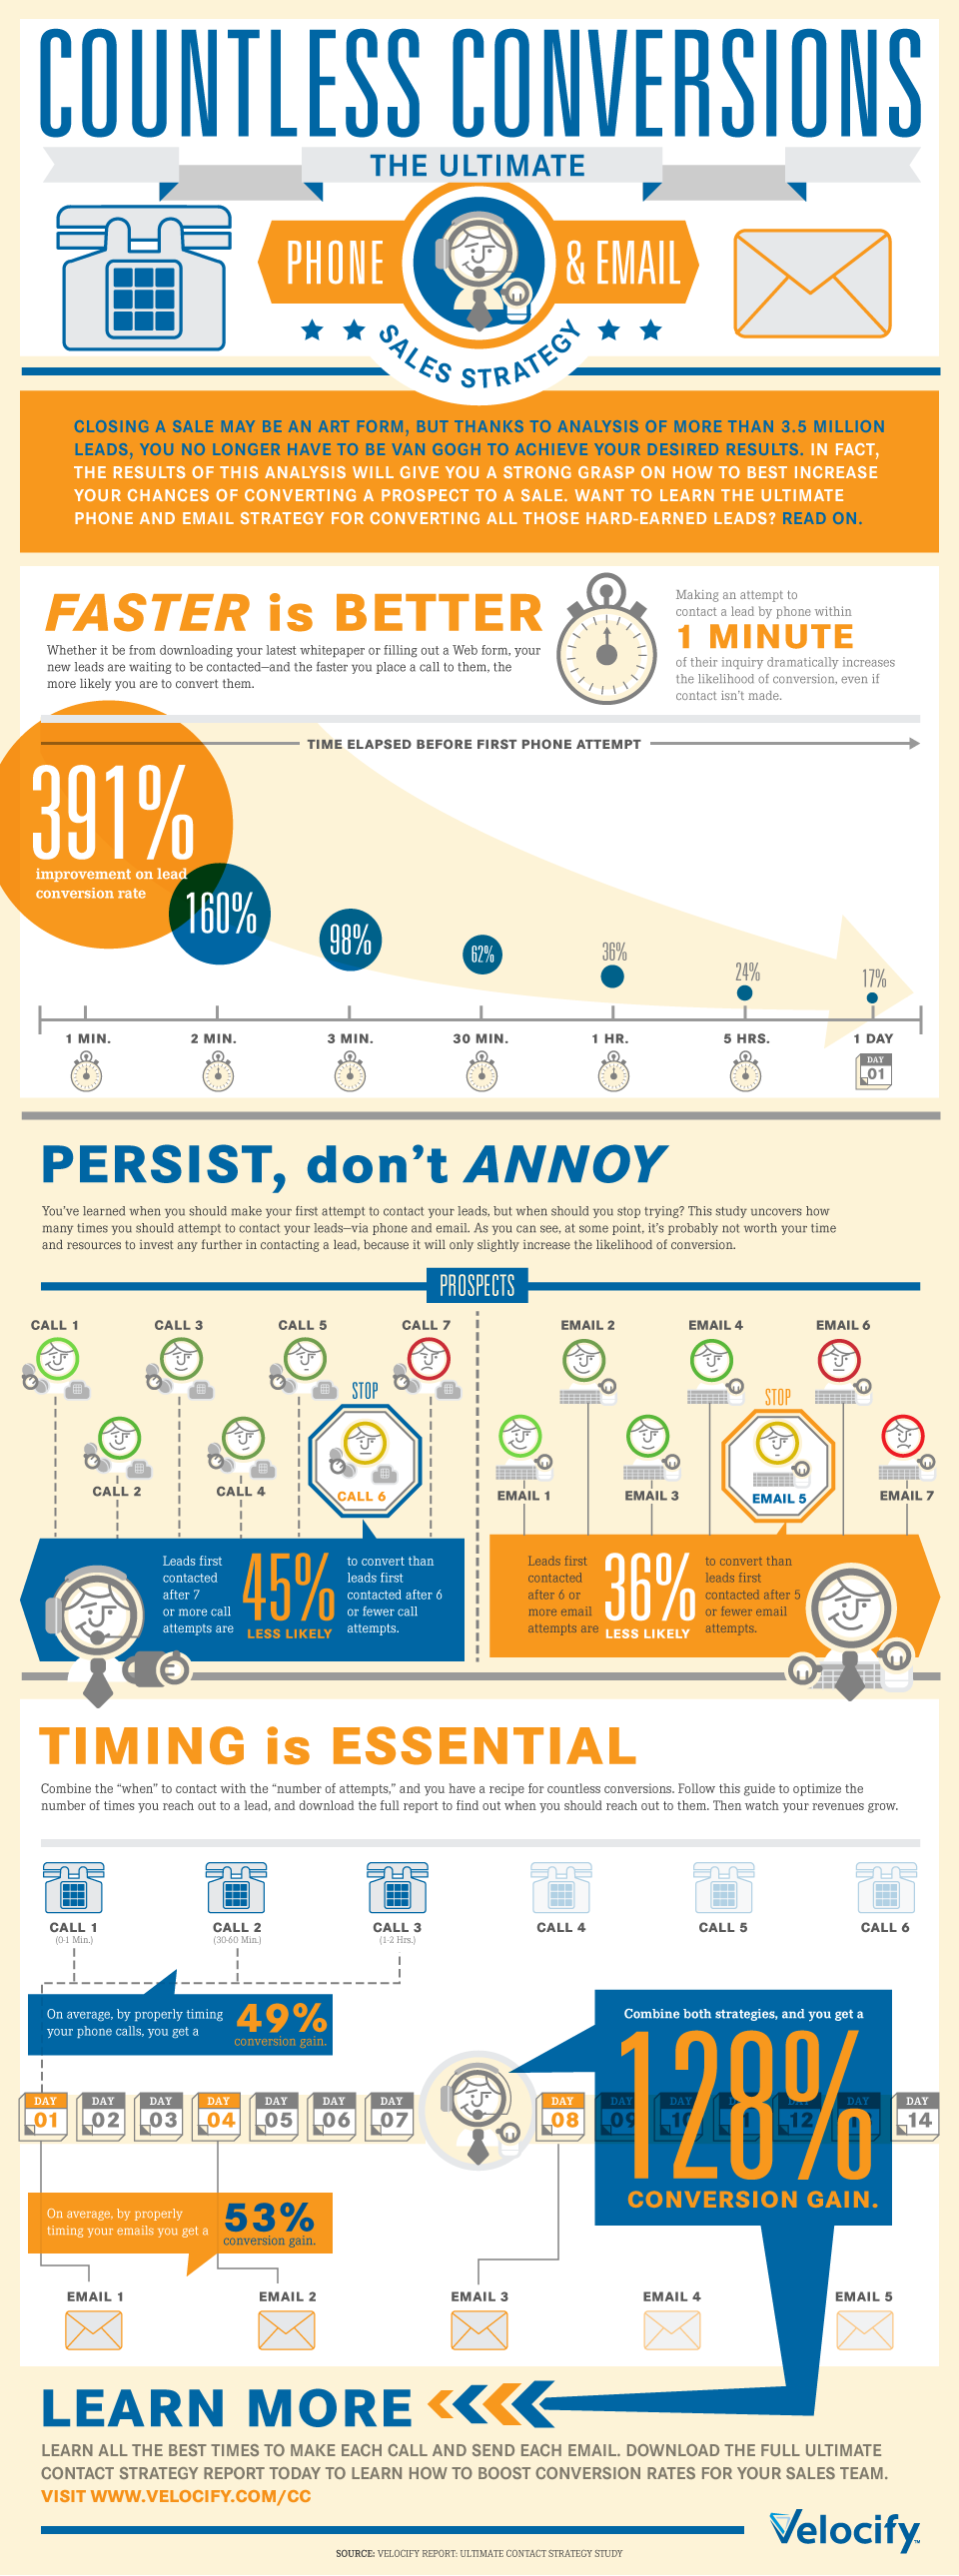 New Leads360 Infographic helps you increase improve your sales contact strategy